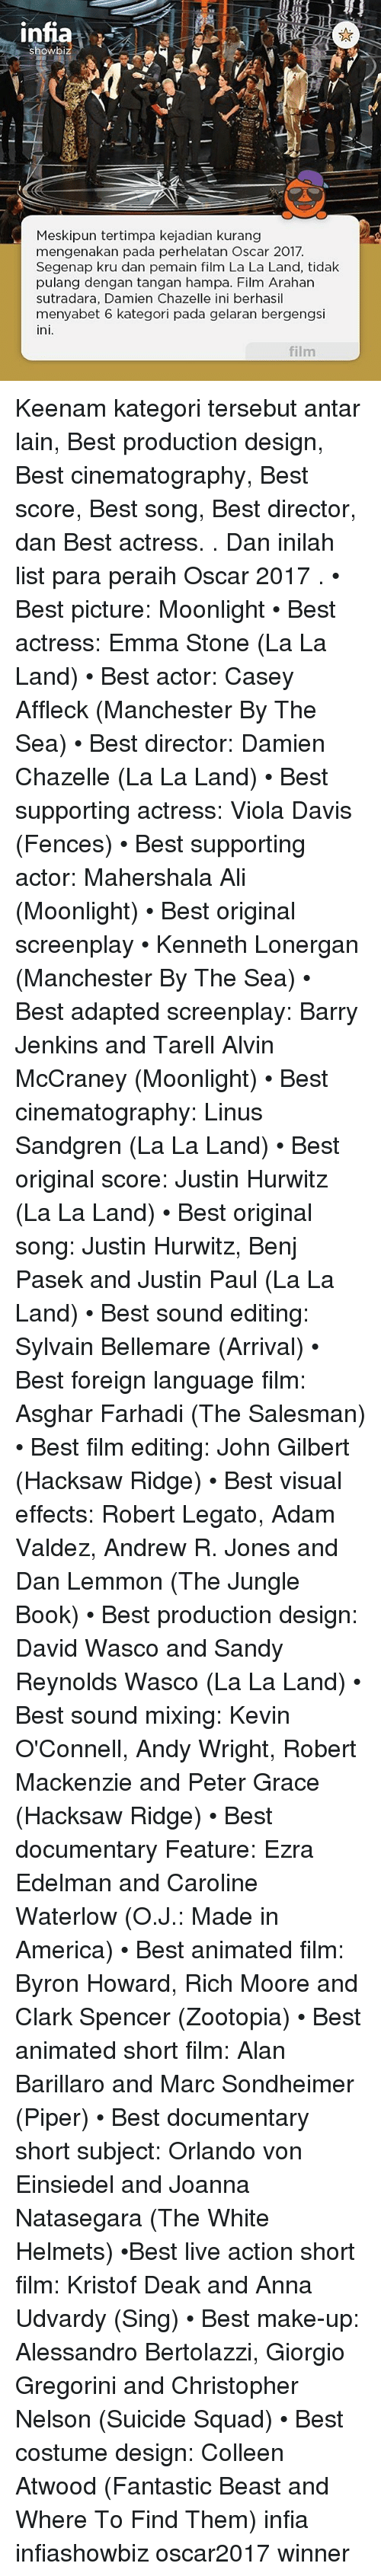 best animes: infia  Meskipun tertimpa kejadian kurang  mengenakan pada perhelatan Oscar 2017.  Segenap kru dan pemain film La La Land, tidak  pulang dengan tangan hampa. Film Arahan  sutradara, Damien Chazelle ini berhasil  menyabet 6 kategori pada gelaran bergengsi  ini.  film Keenam kategori tersebut antar lain, Best production design, Best cinematography, Best score, Best song, Best director, dan Best actress. . Dan inilah list para peraih Oscar 2017 . • Best picture: Moonlight • Best actress: Emma Stone (La La Land) • Best actor: Casey Affleck (Manchester By The Sea) • Best director: Damien Chazelle (La La Land) • Best supporting actress: Viola Davis (Fences) • Best supporting actor: Mahershala Ali (Moonlight) • Best original screenplay • Kenneth Lonergan (Manchester By The Sea) • Best adapted screenplay: Barry Jenkins and Tarell Alvin McCraney (Moonlight) • Best cinematography: Linus Sandgren (La La Land) • Best original score: Justin Hurwitz (La La Land) • Best original song: Justin Hurwitz, Benj Pasek and Justin Paul (La La Land) • Best sound editing: Sylvain Bellemare (Arrival) • Best foreign language film: Asghar Farhadi (The Salesman) • Best film editing: John Gilbert (Hacksaw Ridge) • Best visual effects: Robert Legato, Adam Valdez, Andrew R. Jones and Dan Lemmon (The Jungle Book) • Best production design: David Wasco and Sandy Reynolds Wasco (La La Land) • Best sound mixing: Kevin O'Connell, Andy Wright, Robert Mackenzie and Peter Grace (Hacksaw Ridge) • Best documentary Feature: Ezra Edelman and Caroline Waterlow (O.J.: Made in America) • Best animated film: Byron Howard, Rich Moore and Clark Spencer (Zootopia) • Best animated short film: Alan Barillaro and Marc Sondheimer (Piper) • Best documentary short subject: Orlando von Einsiedel and Joanna Natasegara (The White Helmets) •Best live action short film: Kristof Deak and Anna Udvardy (Sing) • Best make-up: Alessandro Bertolazzi, Giorgio Gregorini and Christopher Nelson (Suicide Squad) • Best costume design: Colleen Atwood (Fantastic Beast and Where To Find Them) infia infiashowbiz oscar2017 winner